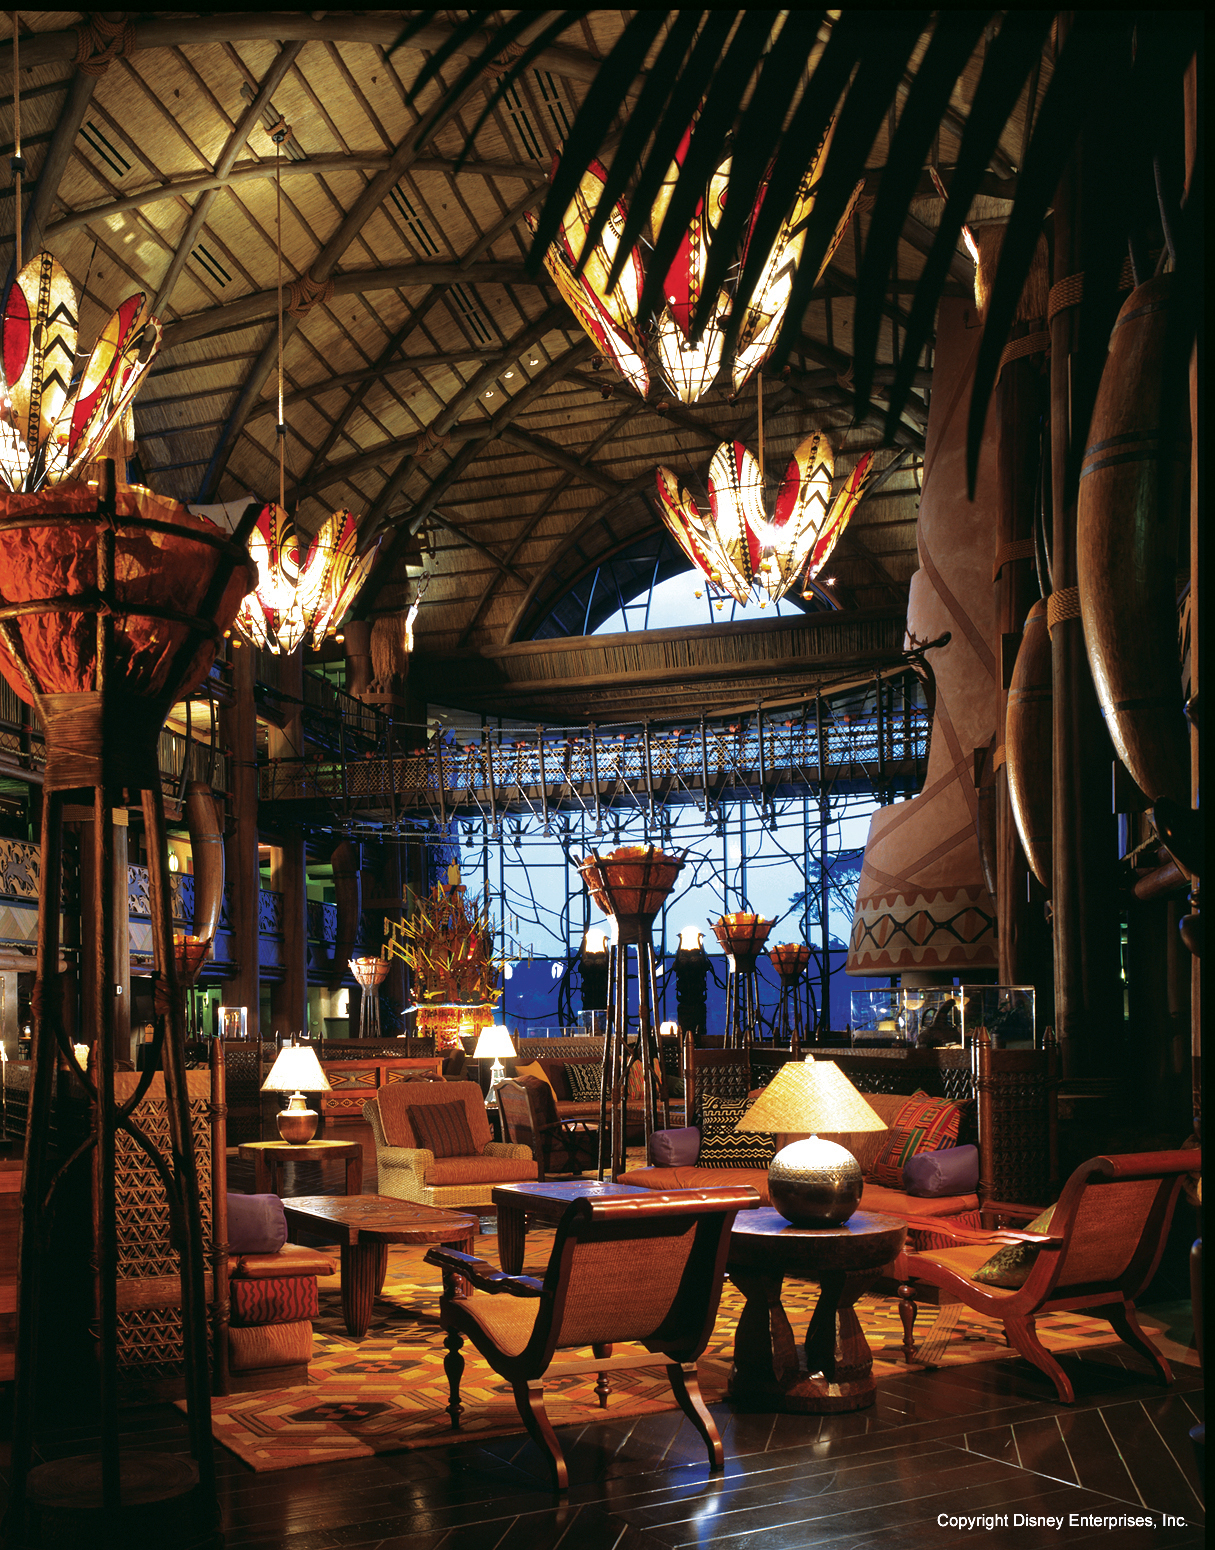 animal_kingdom_lodge_disney_orlando_florida_lobby.jpg